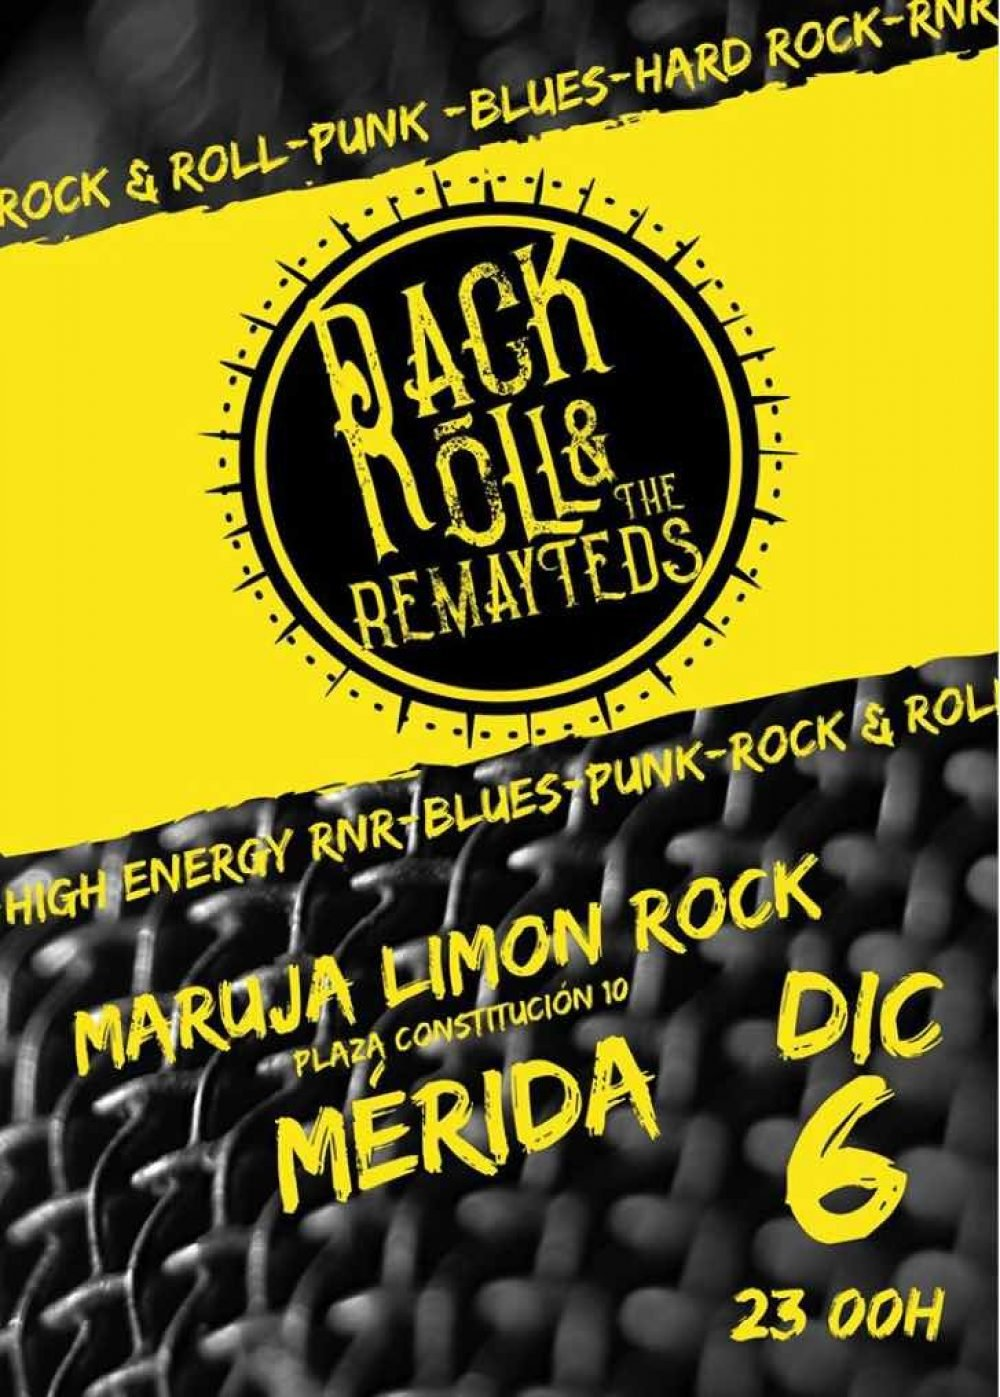 Concierto Rack Roll The Remayteds